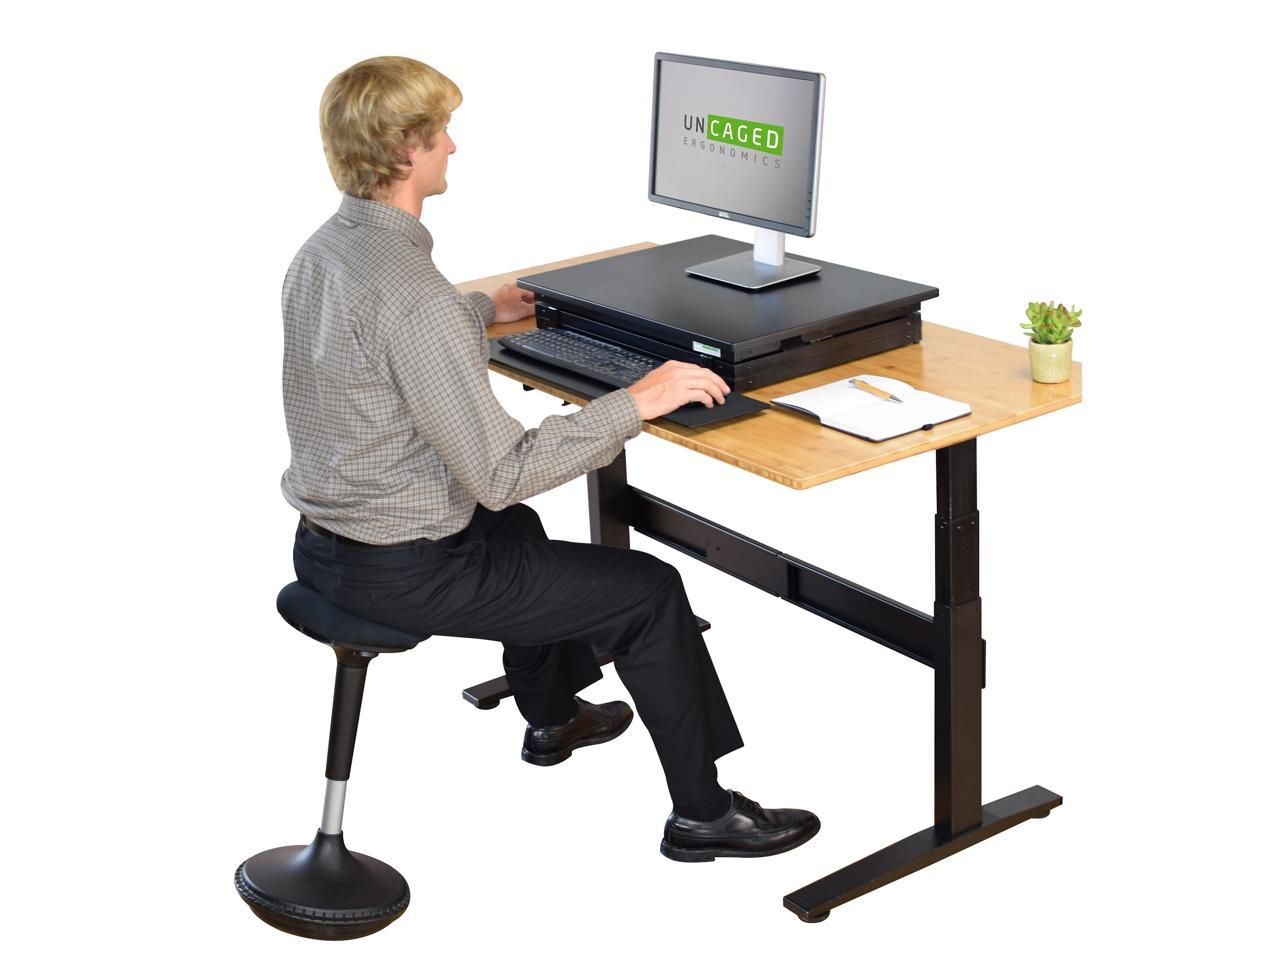 Image of: Wobble Stool Standing Desk Balance Chair For Active Sitting Tall Ergonomic Adjustable Height Swiveling Leaning Perch Perching Ergonomic Sit Stand High Computer Chair Swivels 360 For Adults Kids Newegg Com